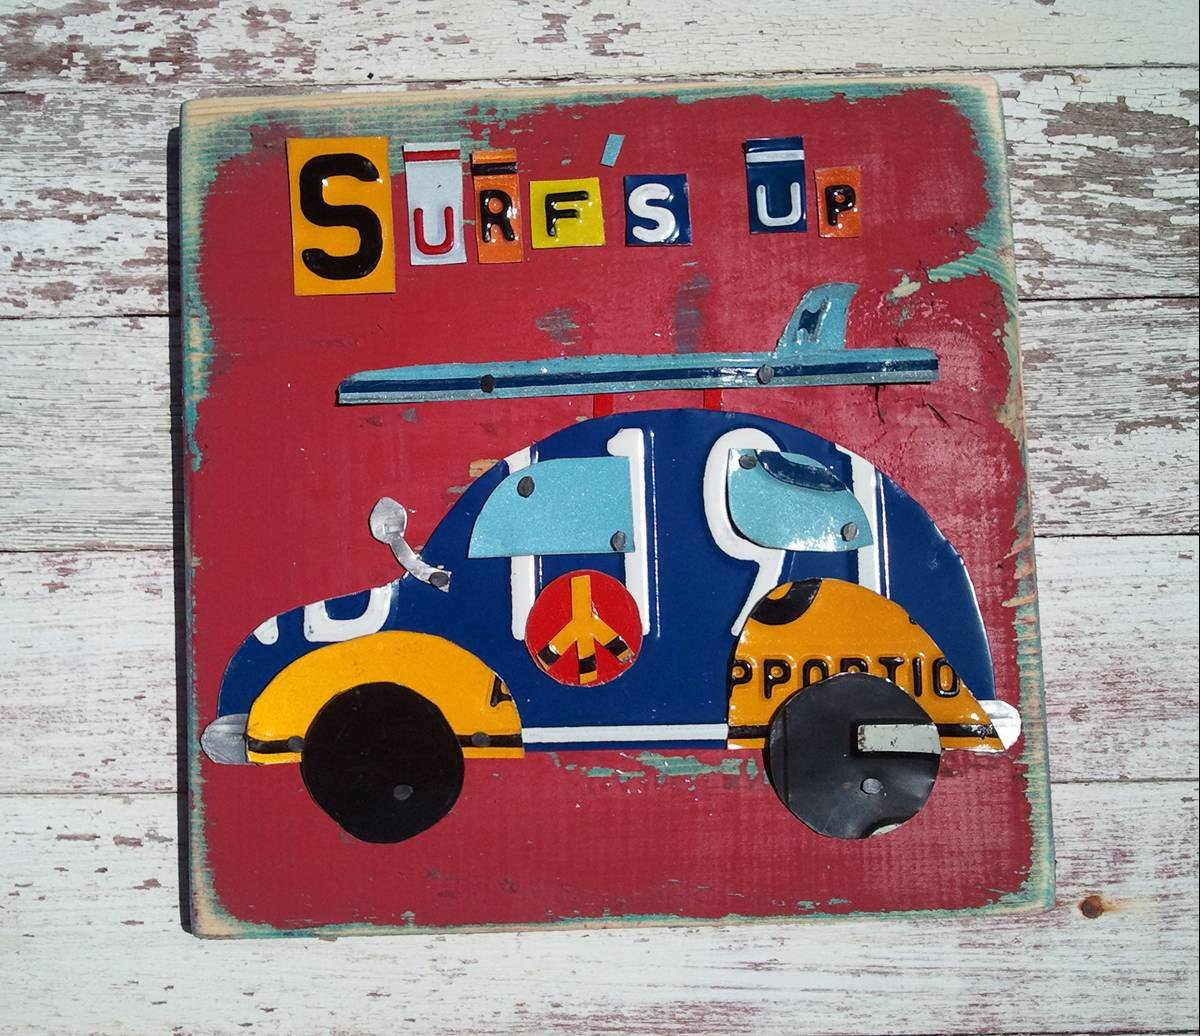 Recycled Art Co. Surfer Art, Surf's Up